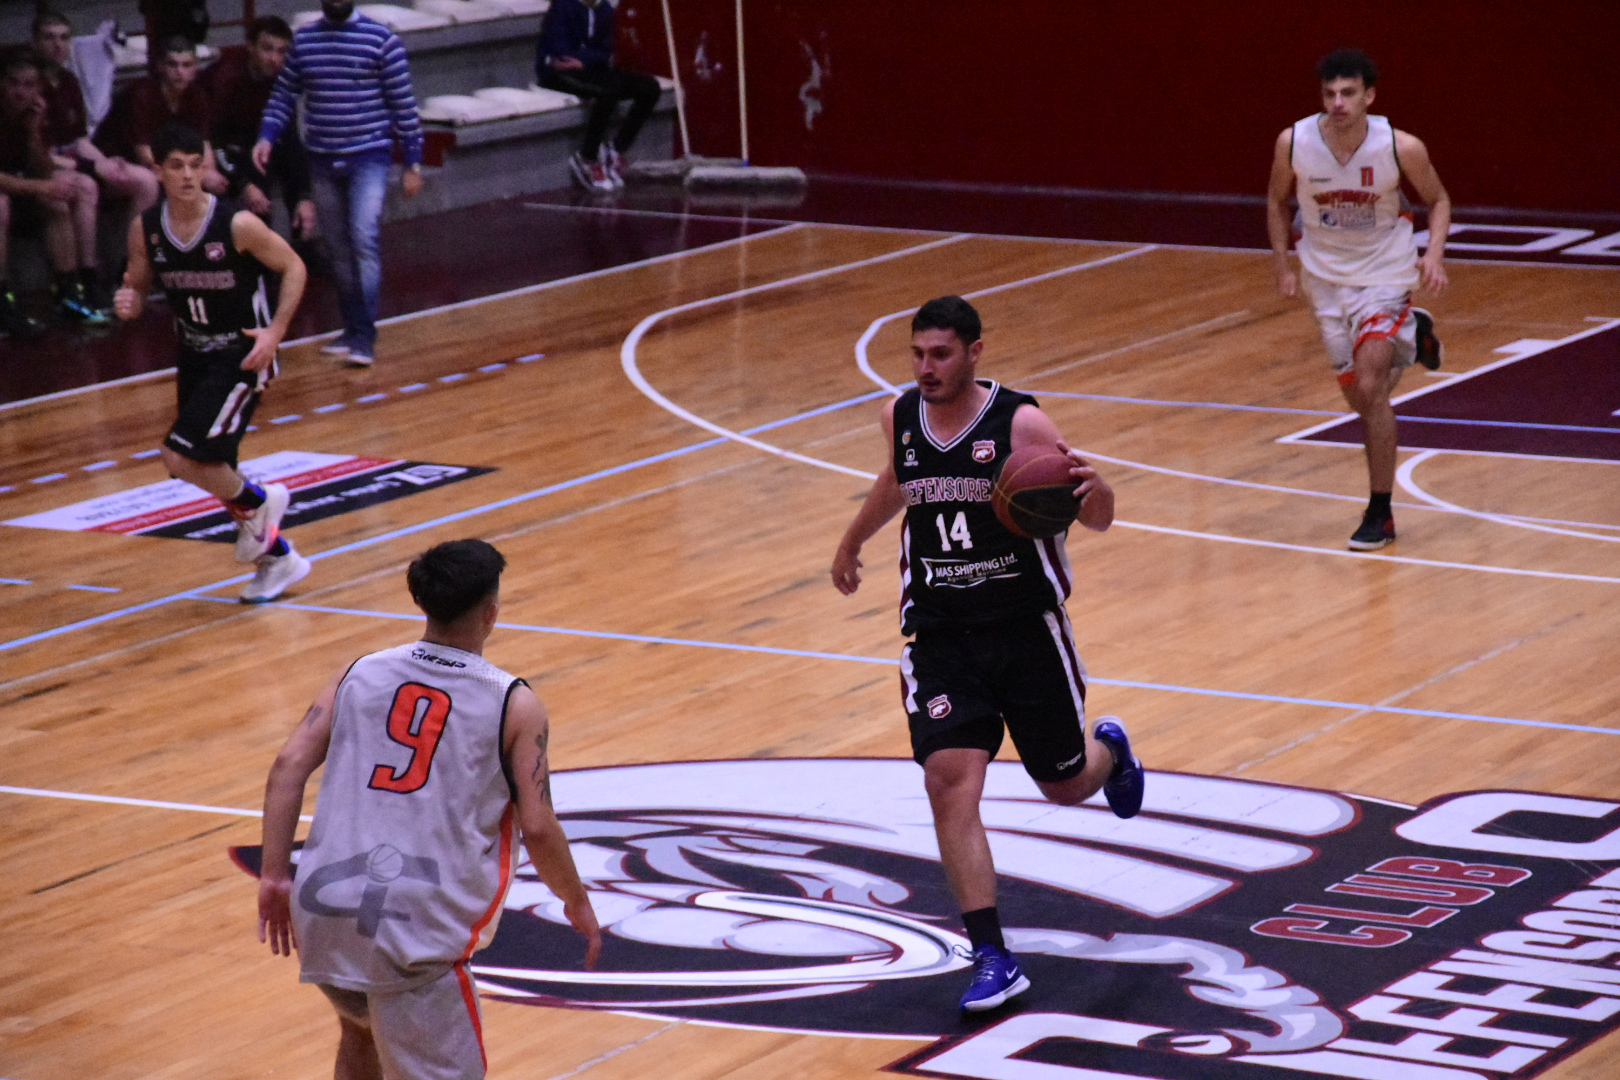 Basketball before the Federation: Defenders play their last chance today in San Pedro